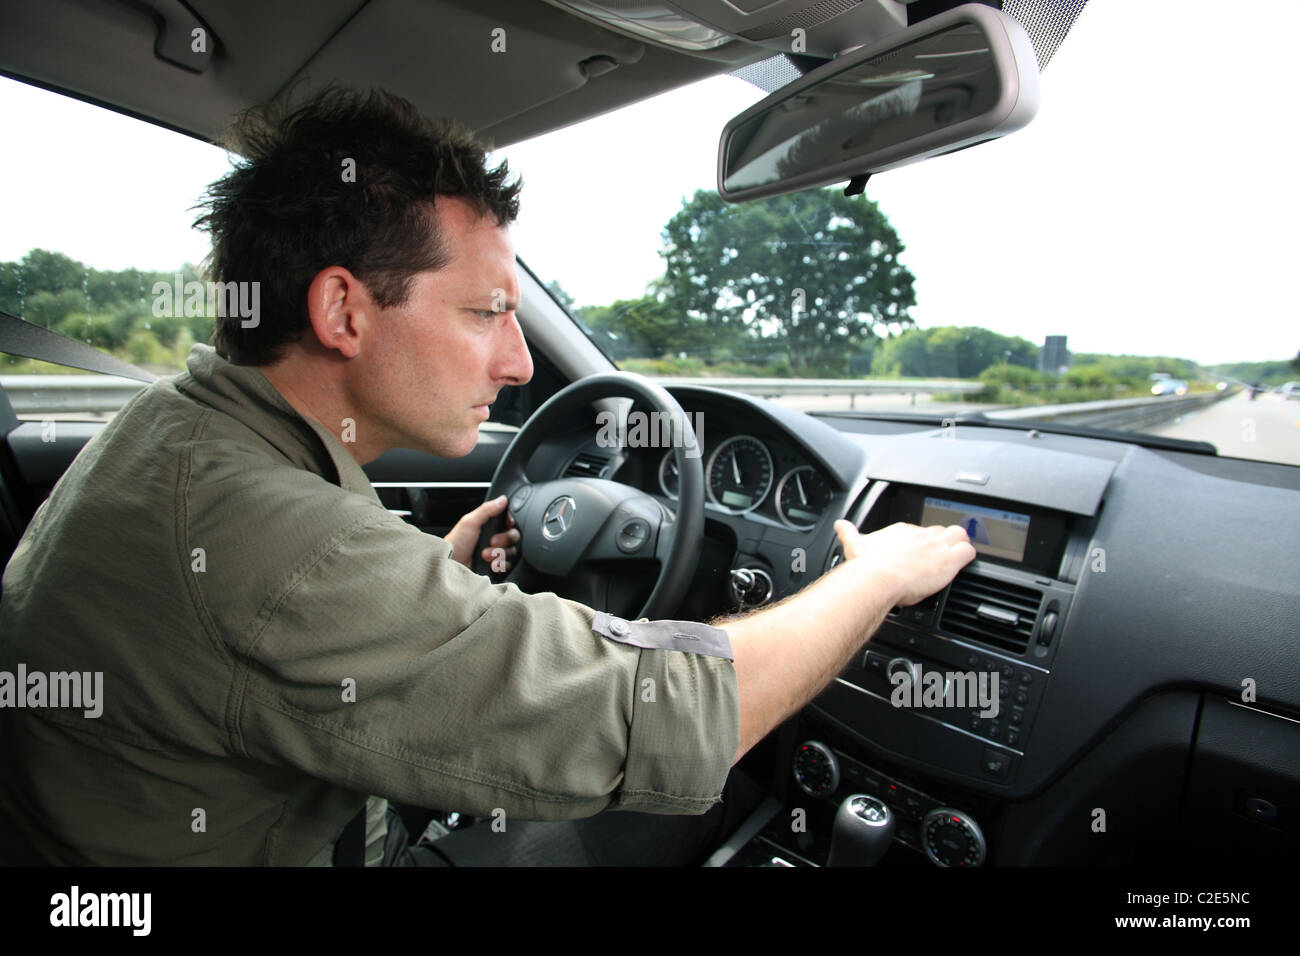 A man looking at his car navigation system while driving - Stock Image